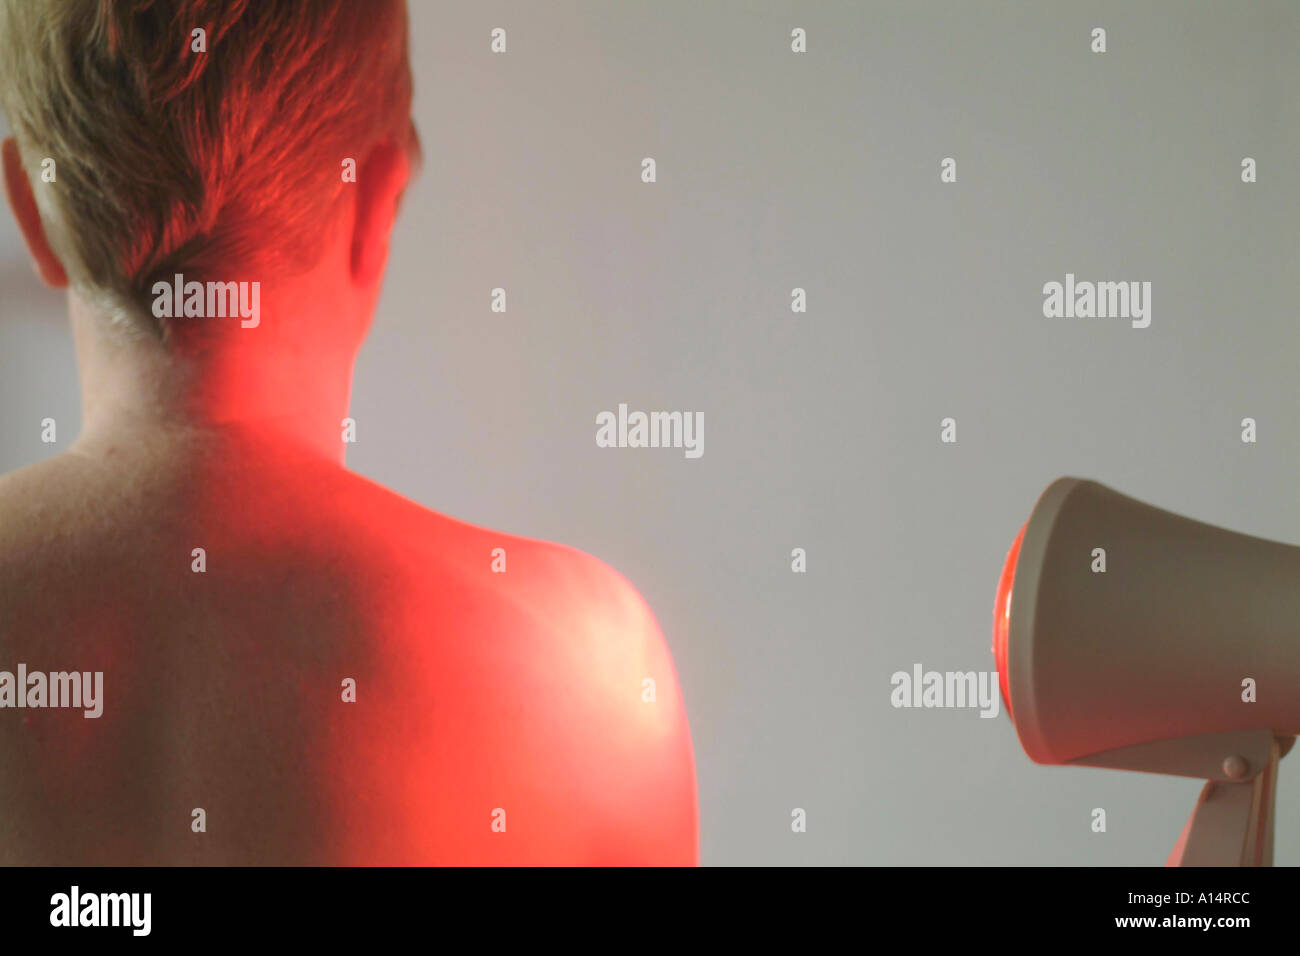 handling with warming irradiation - Stock Image